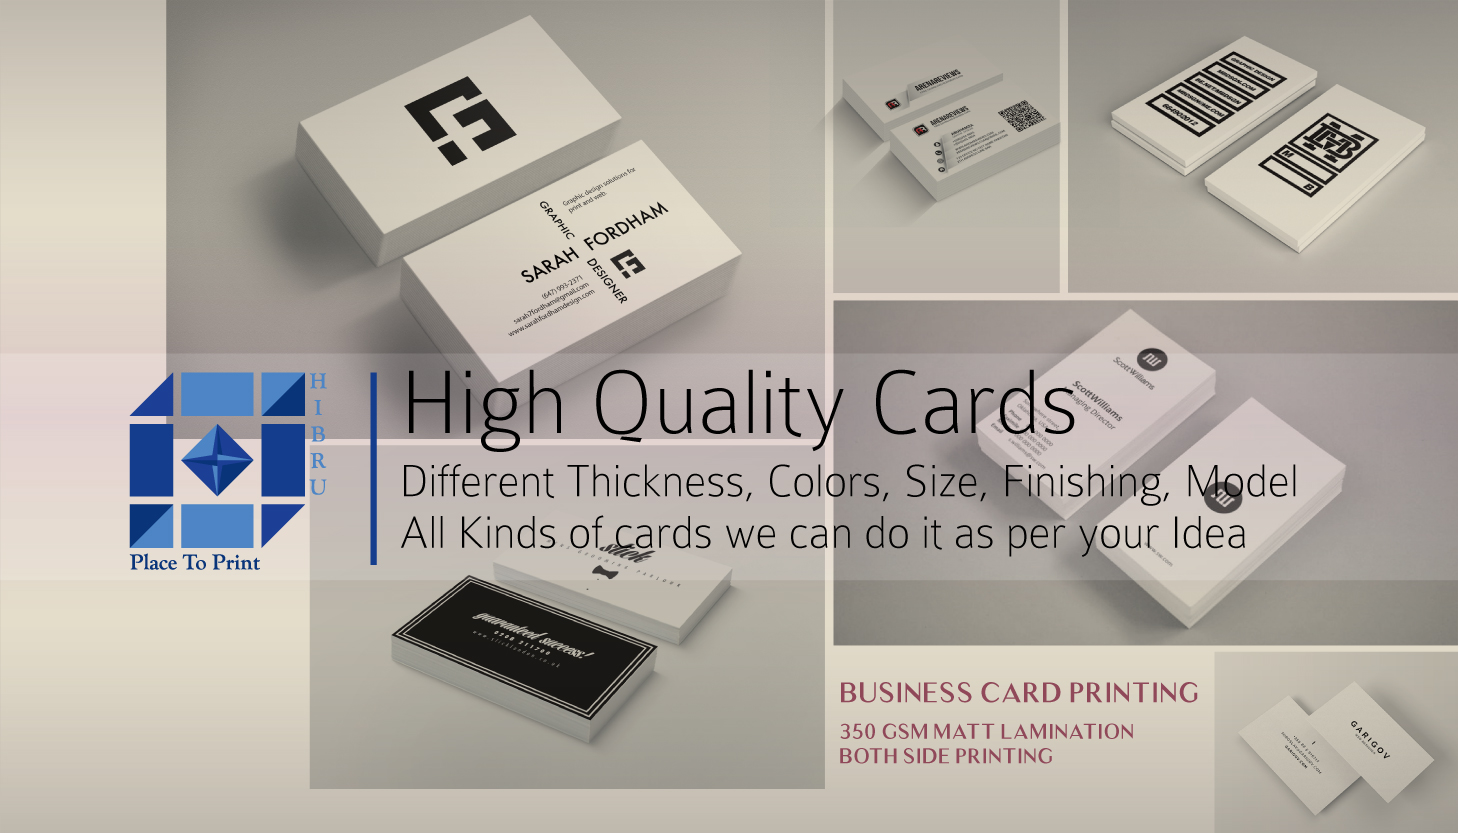 Business card printing best business cards business card business card printing best business cards business card template business card printing cheap business cards visiting card magicingreecefo Gallery